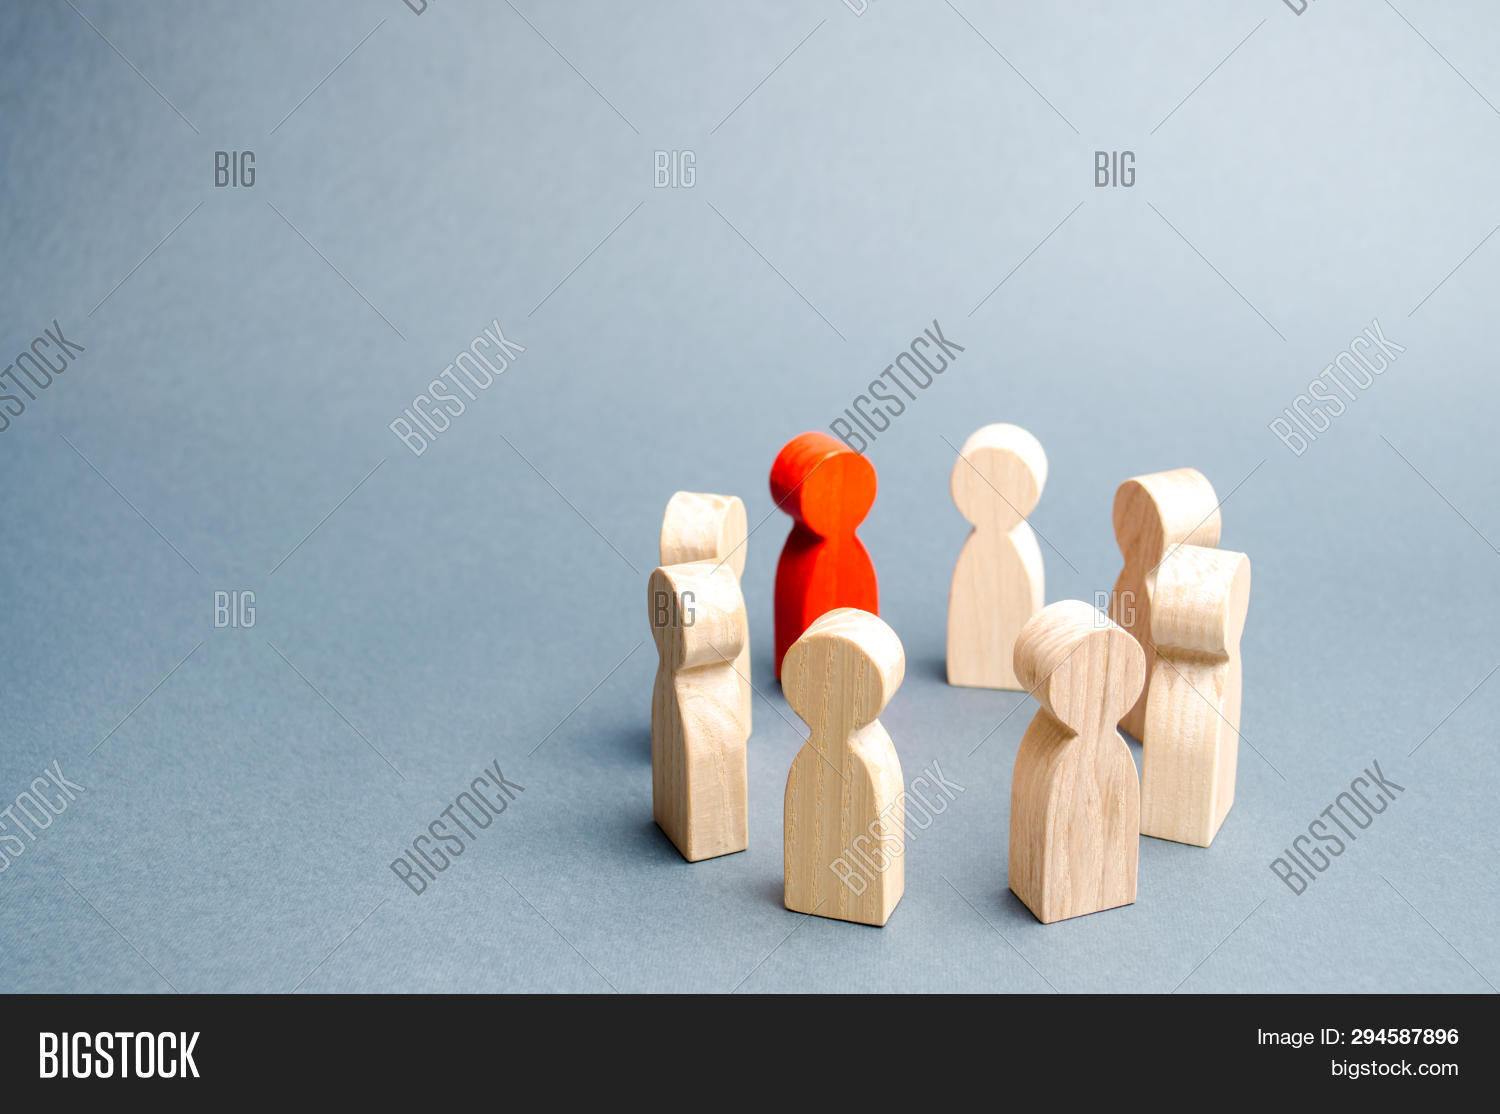 People Stand In A Circle On A Gray Background. Communication. Business Team, Teamwork, Team Spirit.